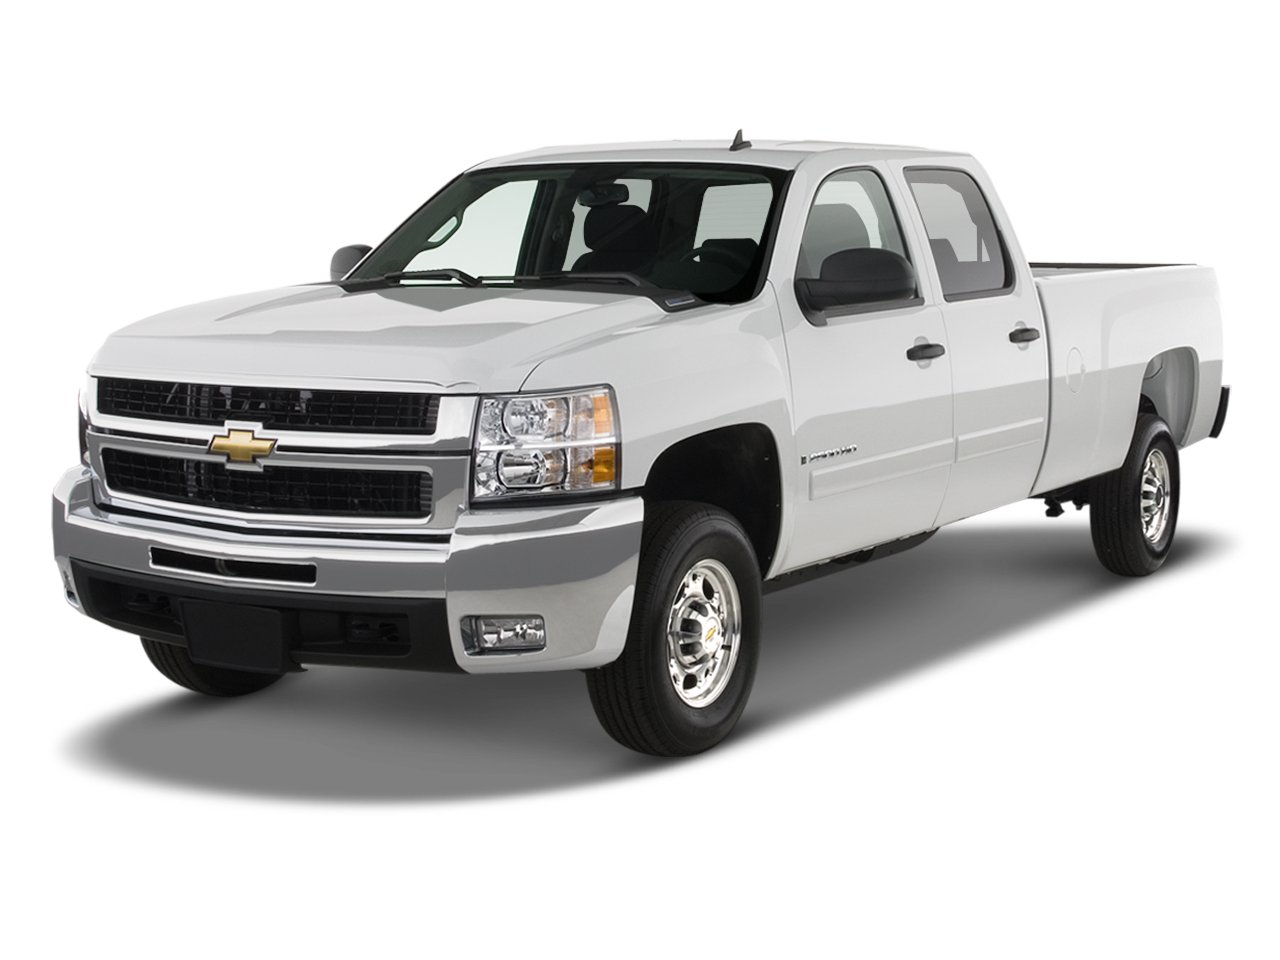 Silverado 2010 chevrolet silverado 2500 : Used Chevy 2500 - McCluskey Automotive